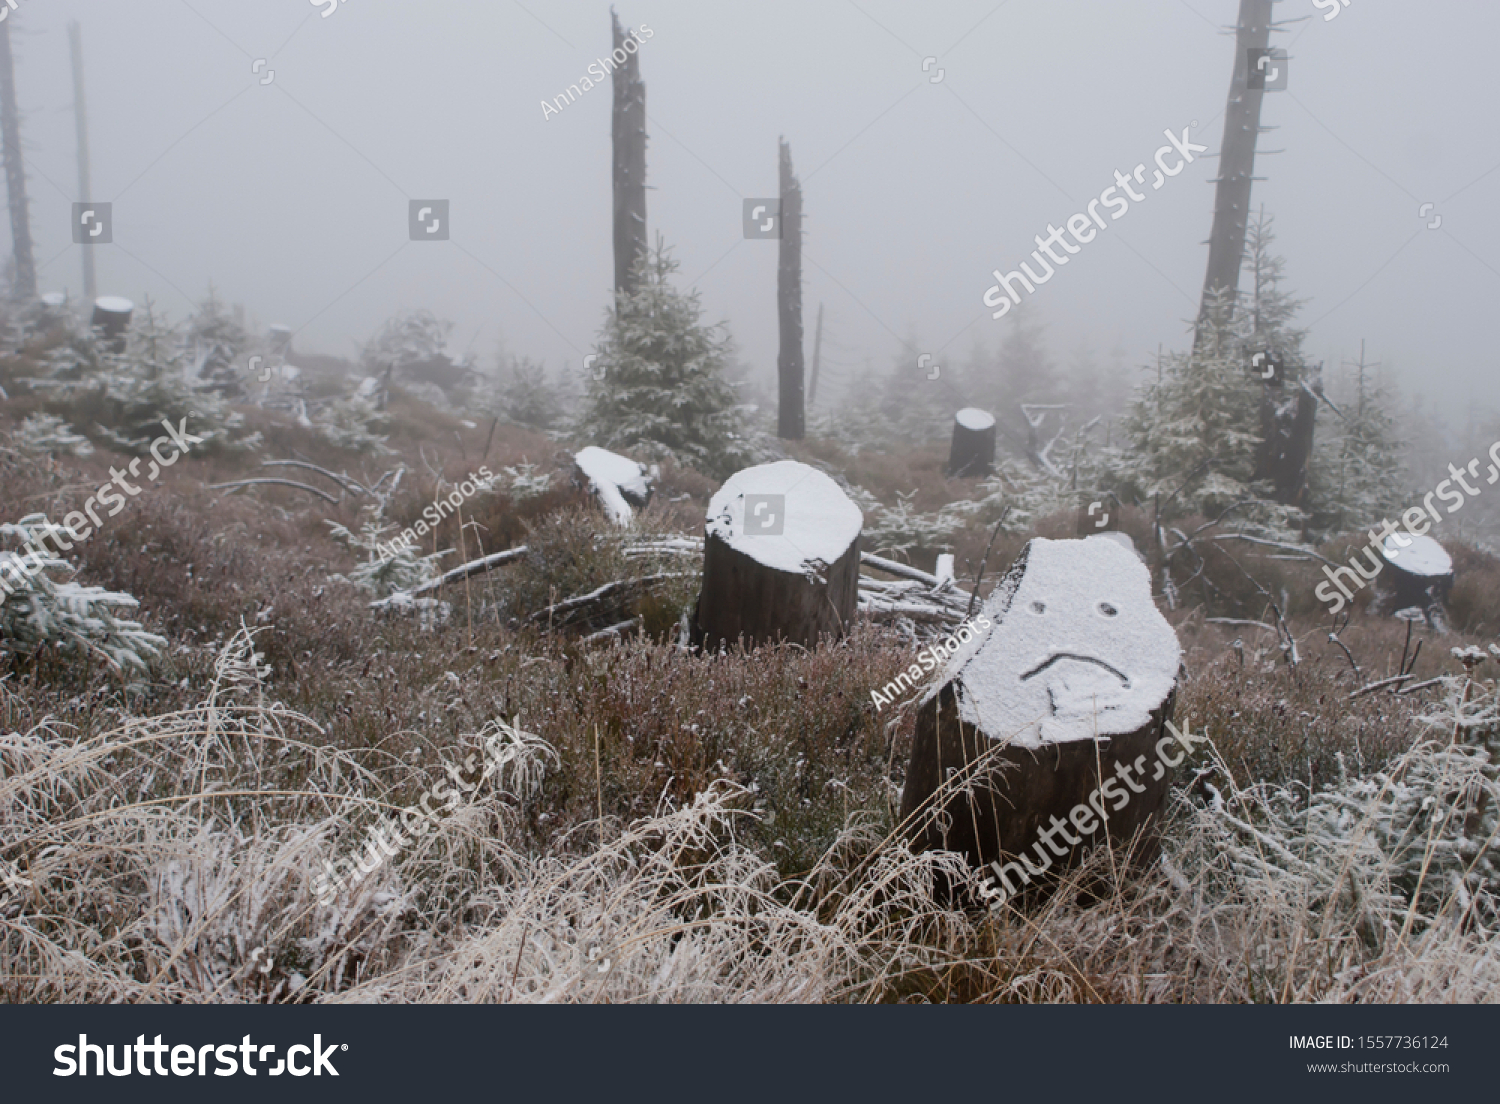 stock-photo-fog-in-the-winter-woods-snow